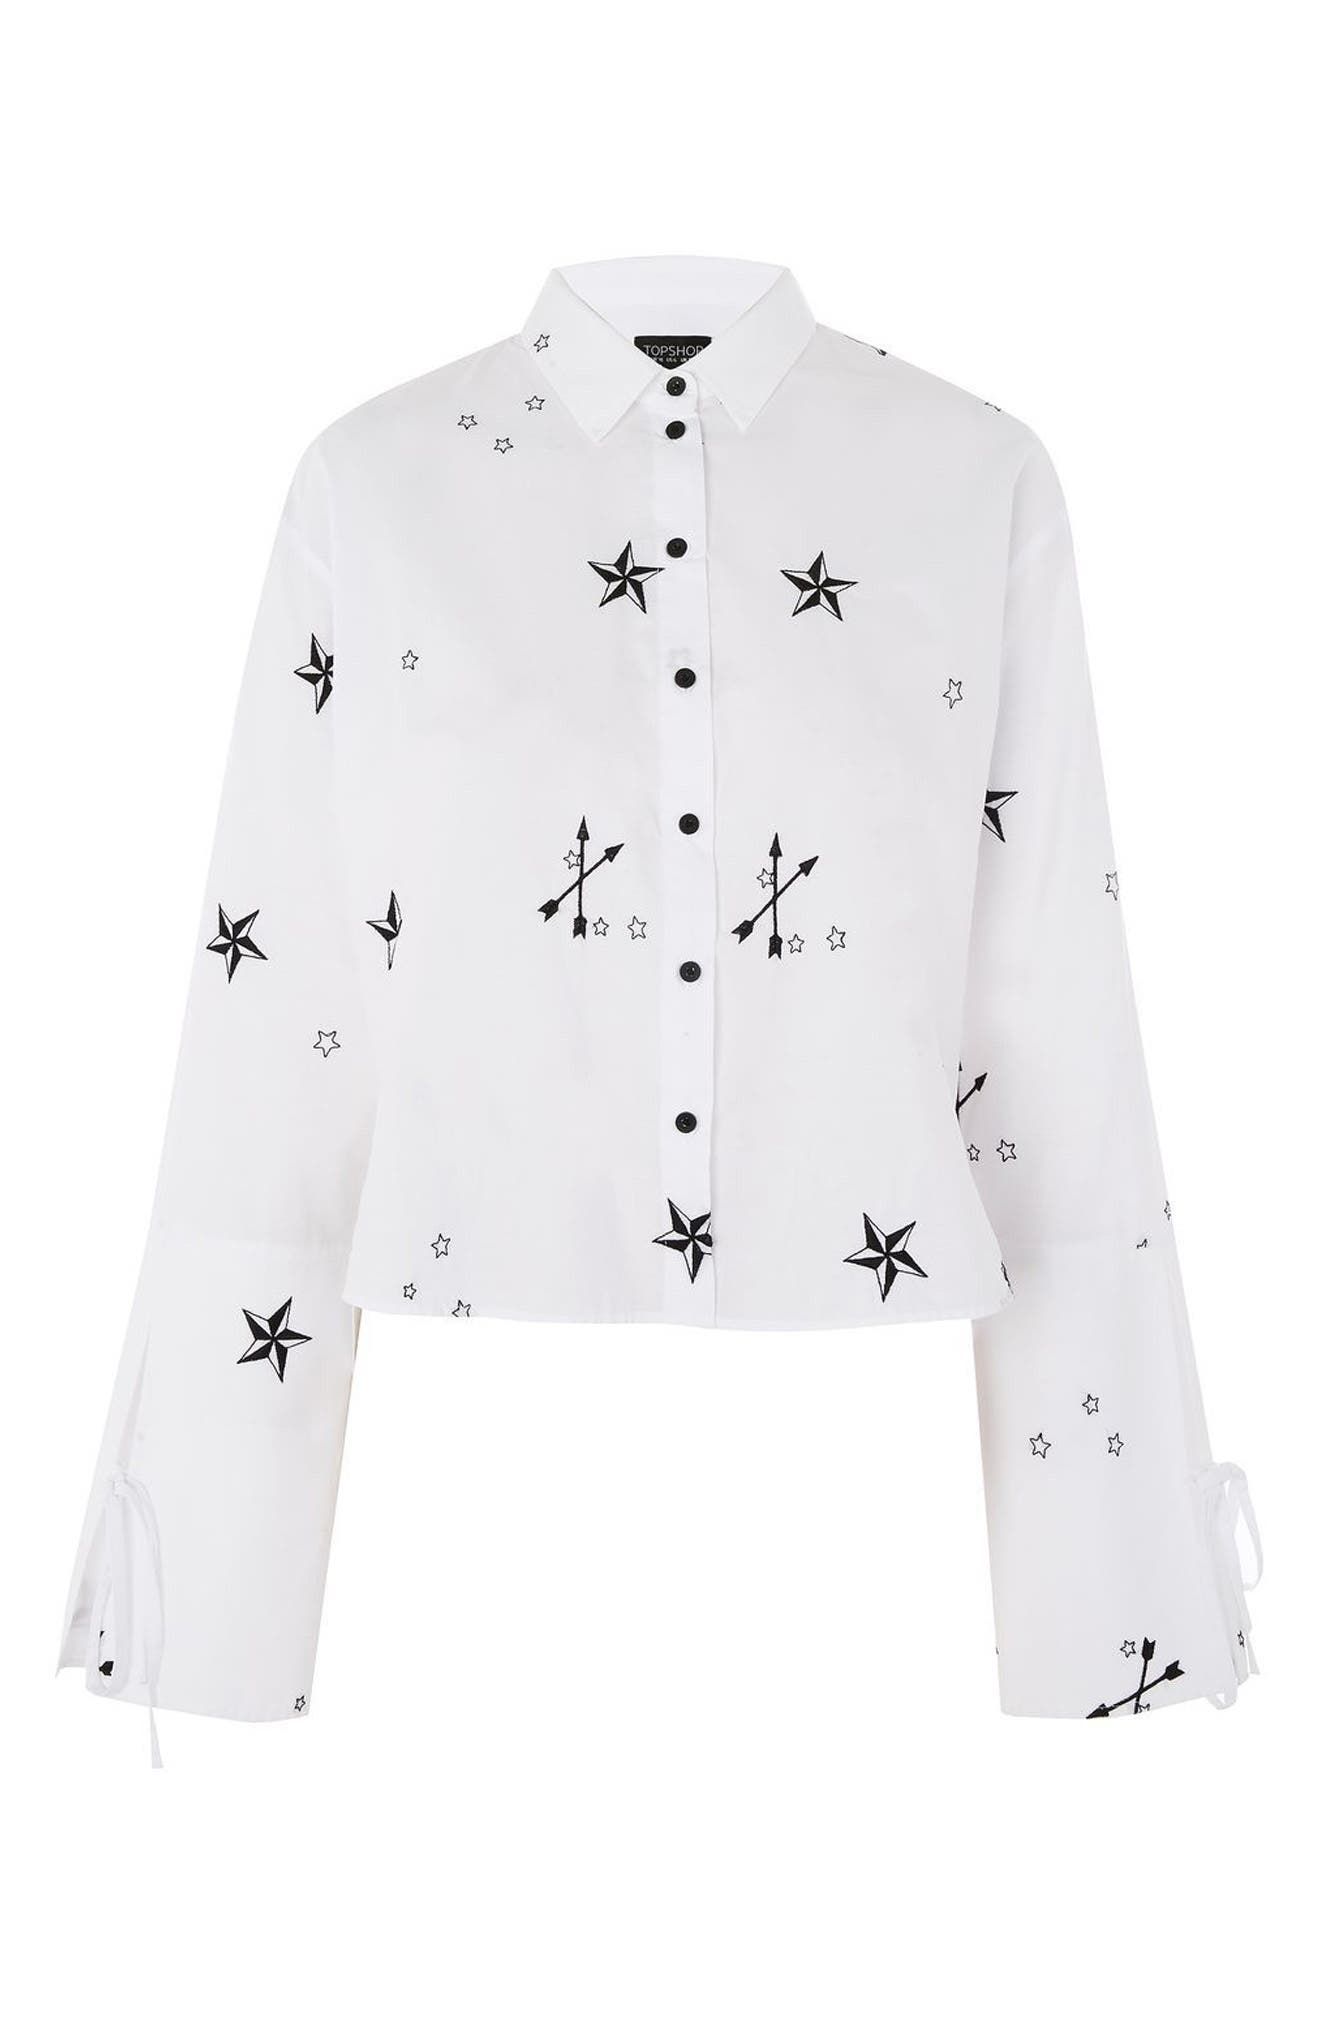 Star Embroidered Shirt,                             Alternate thumbnail 3, color,                             White Multi